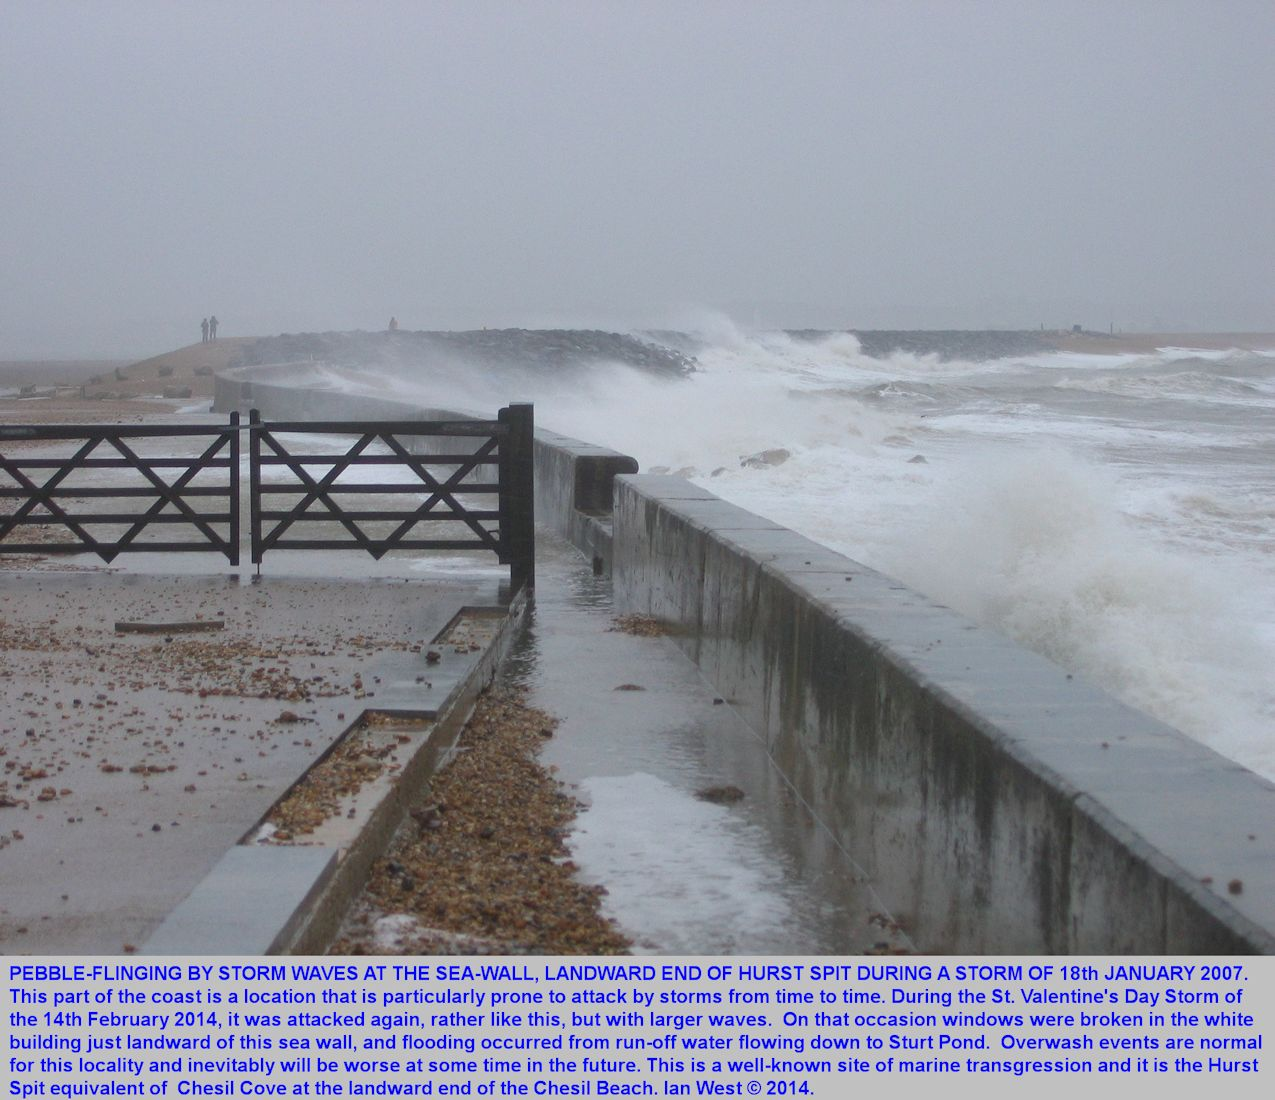 Storm action, overwash and pebble-throwing at the landward end of Hurst Spit, Milford-on-Sea, Hampshire, old photo January 2007, for comparison